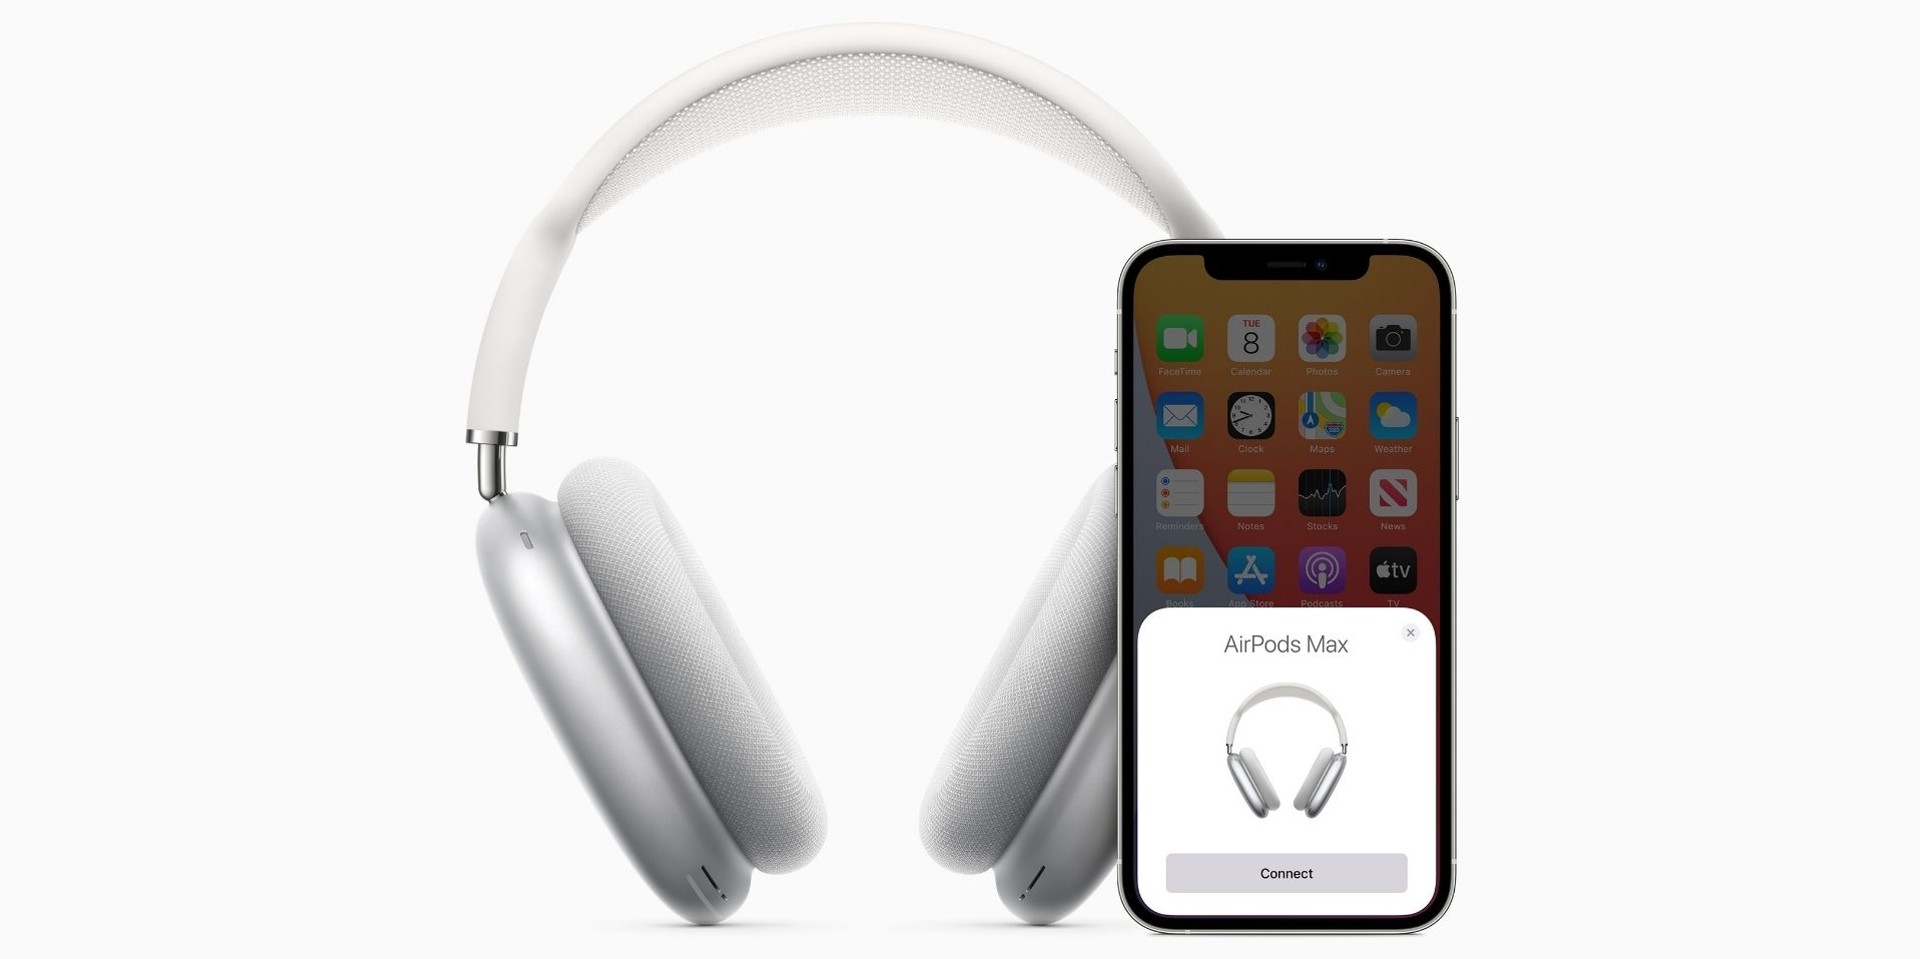 """Apple launches new AirPods Max, over-ear headphones """"to wirelessly deliver the ultimate personal listening experience"""""""